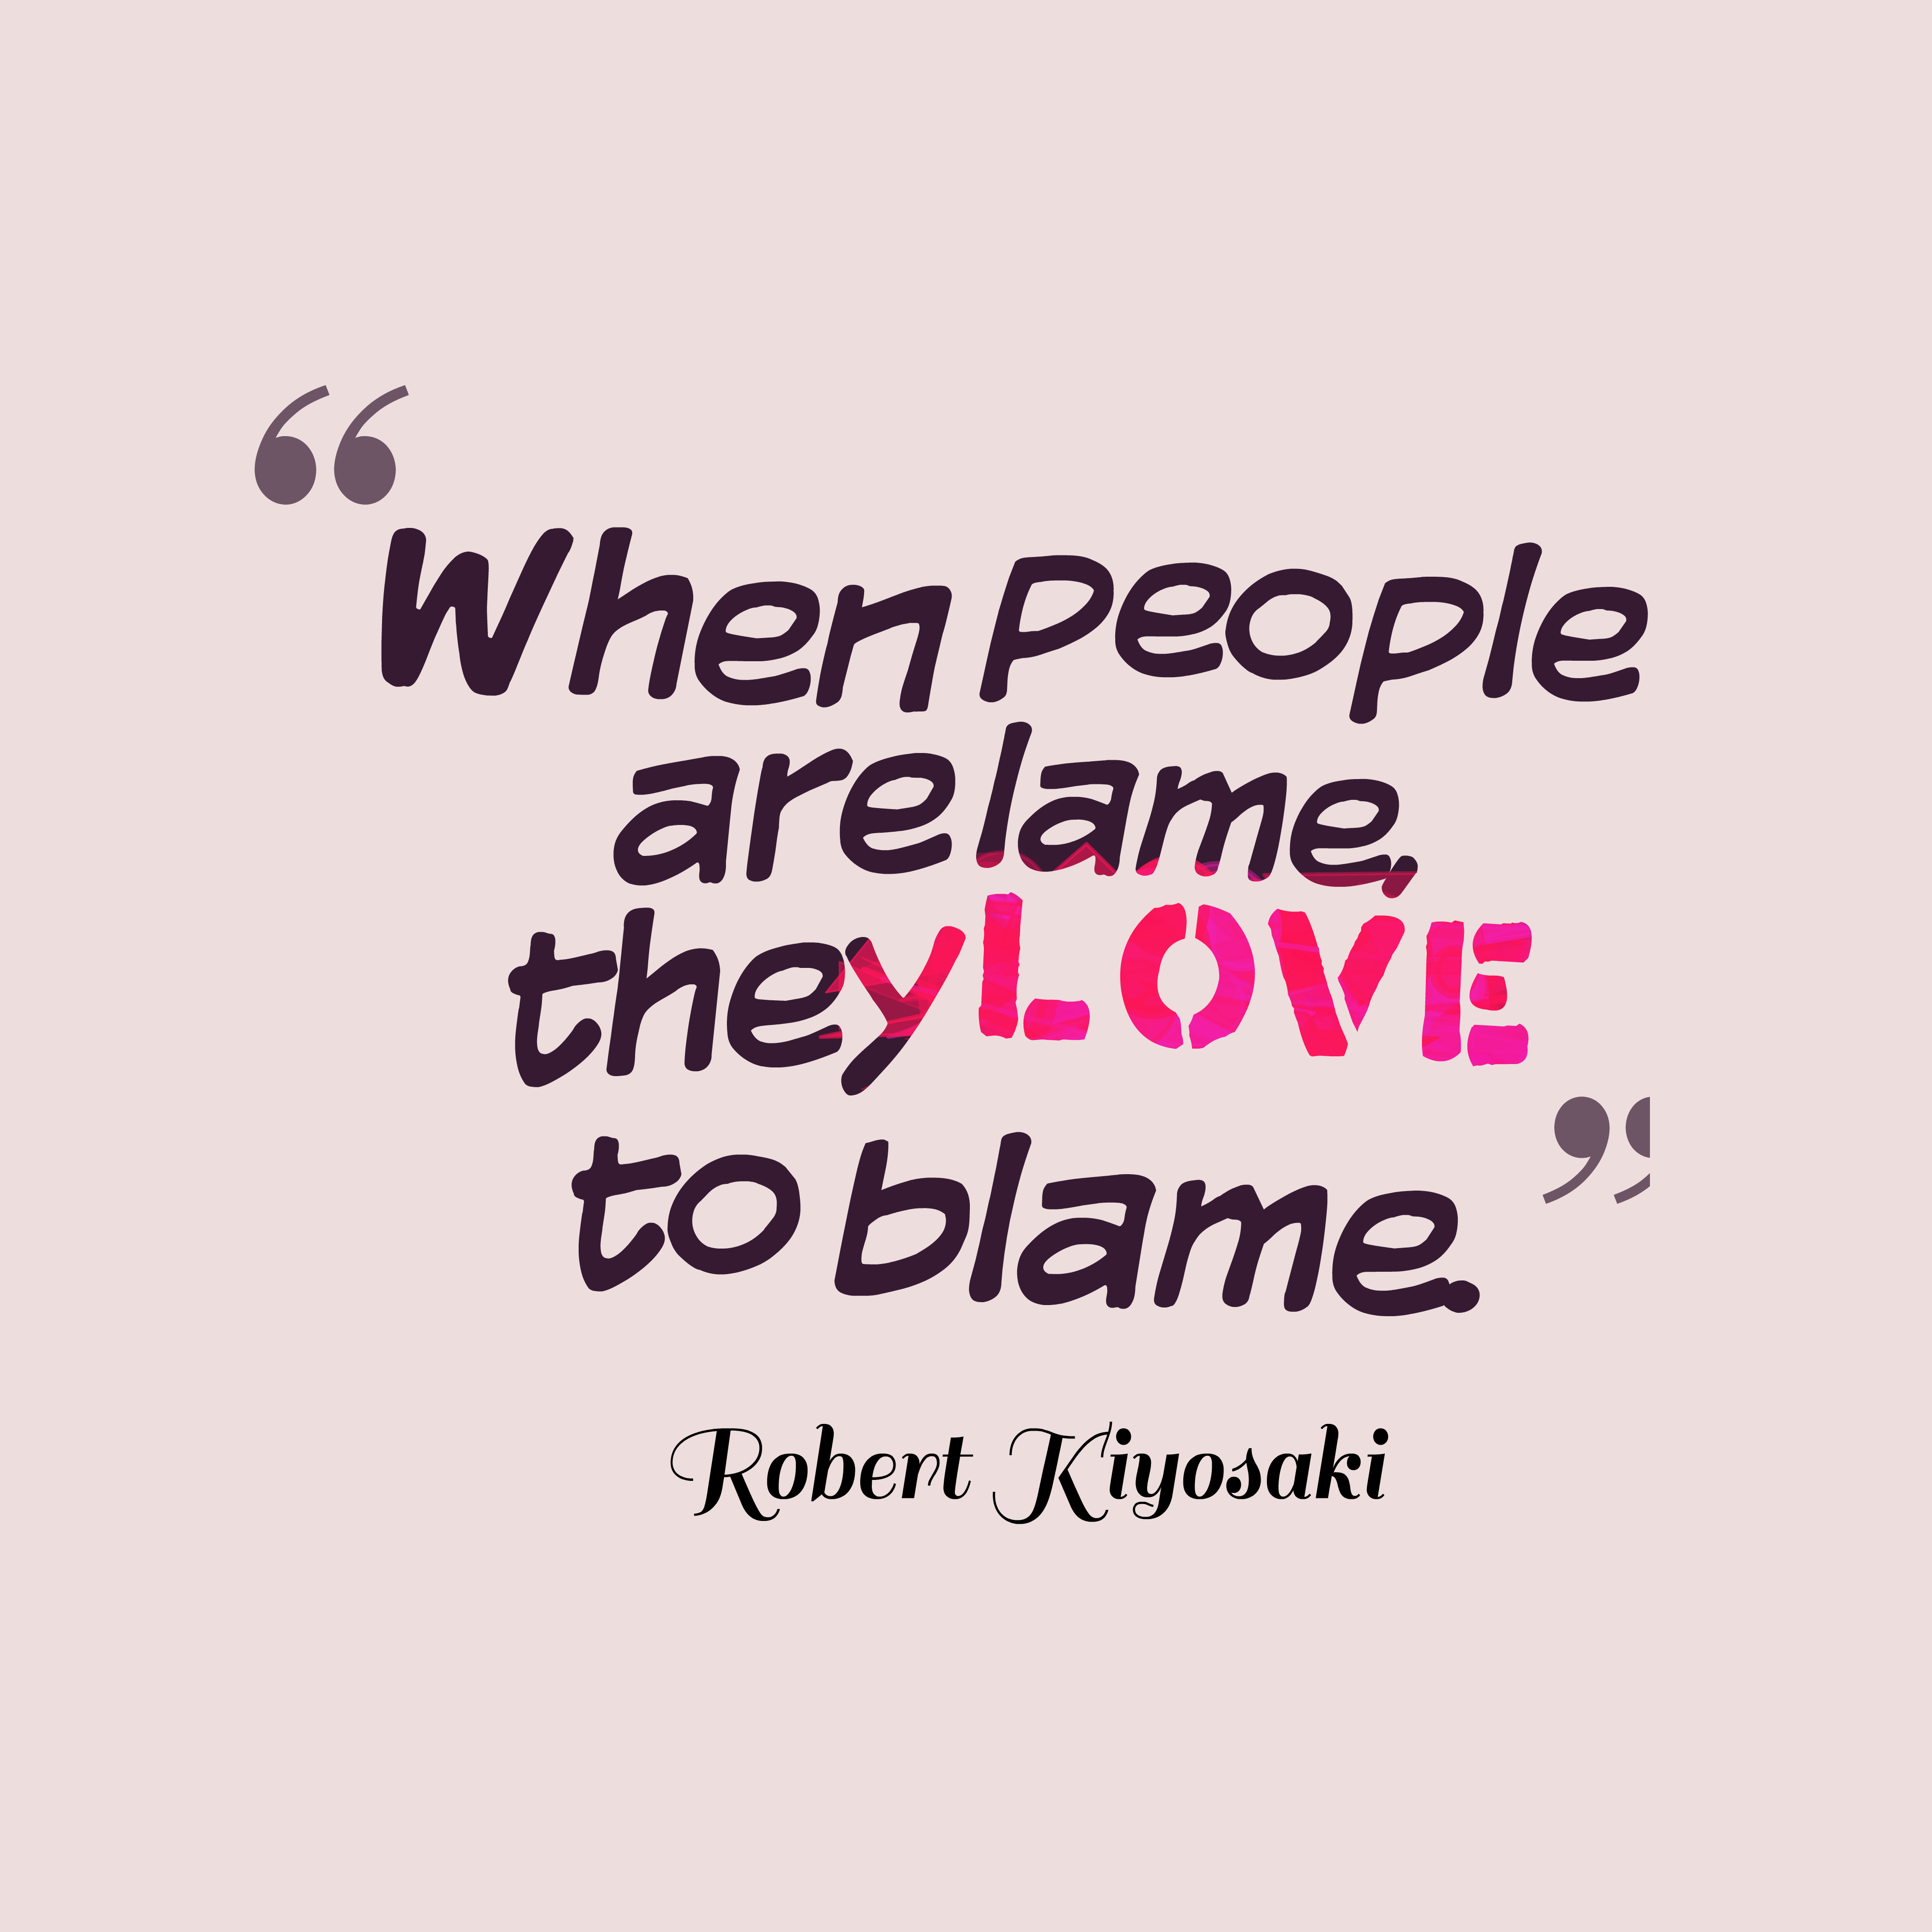 Quotes image of When people are lame, they love to blame.